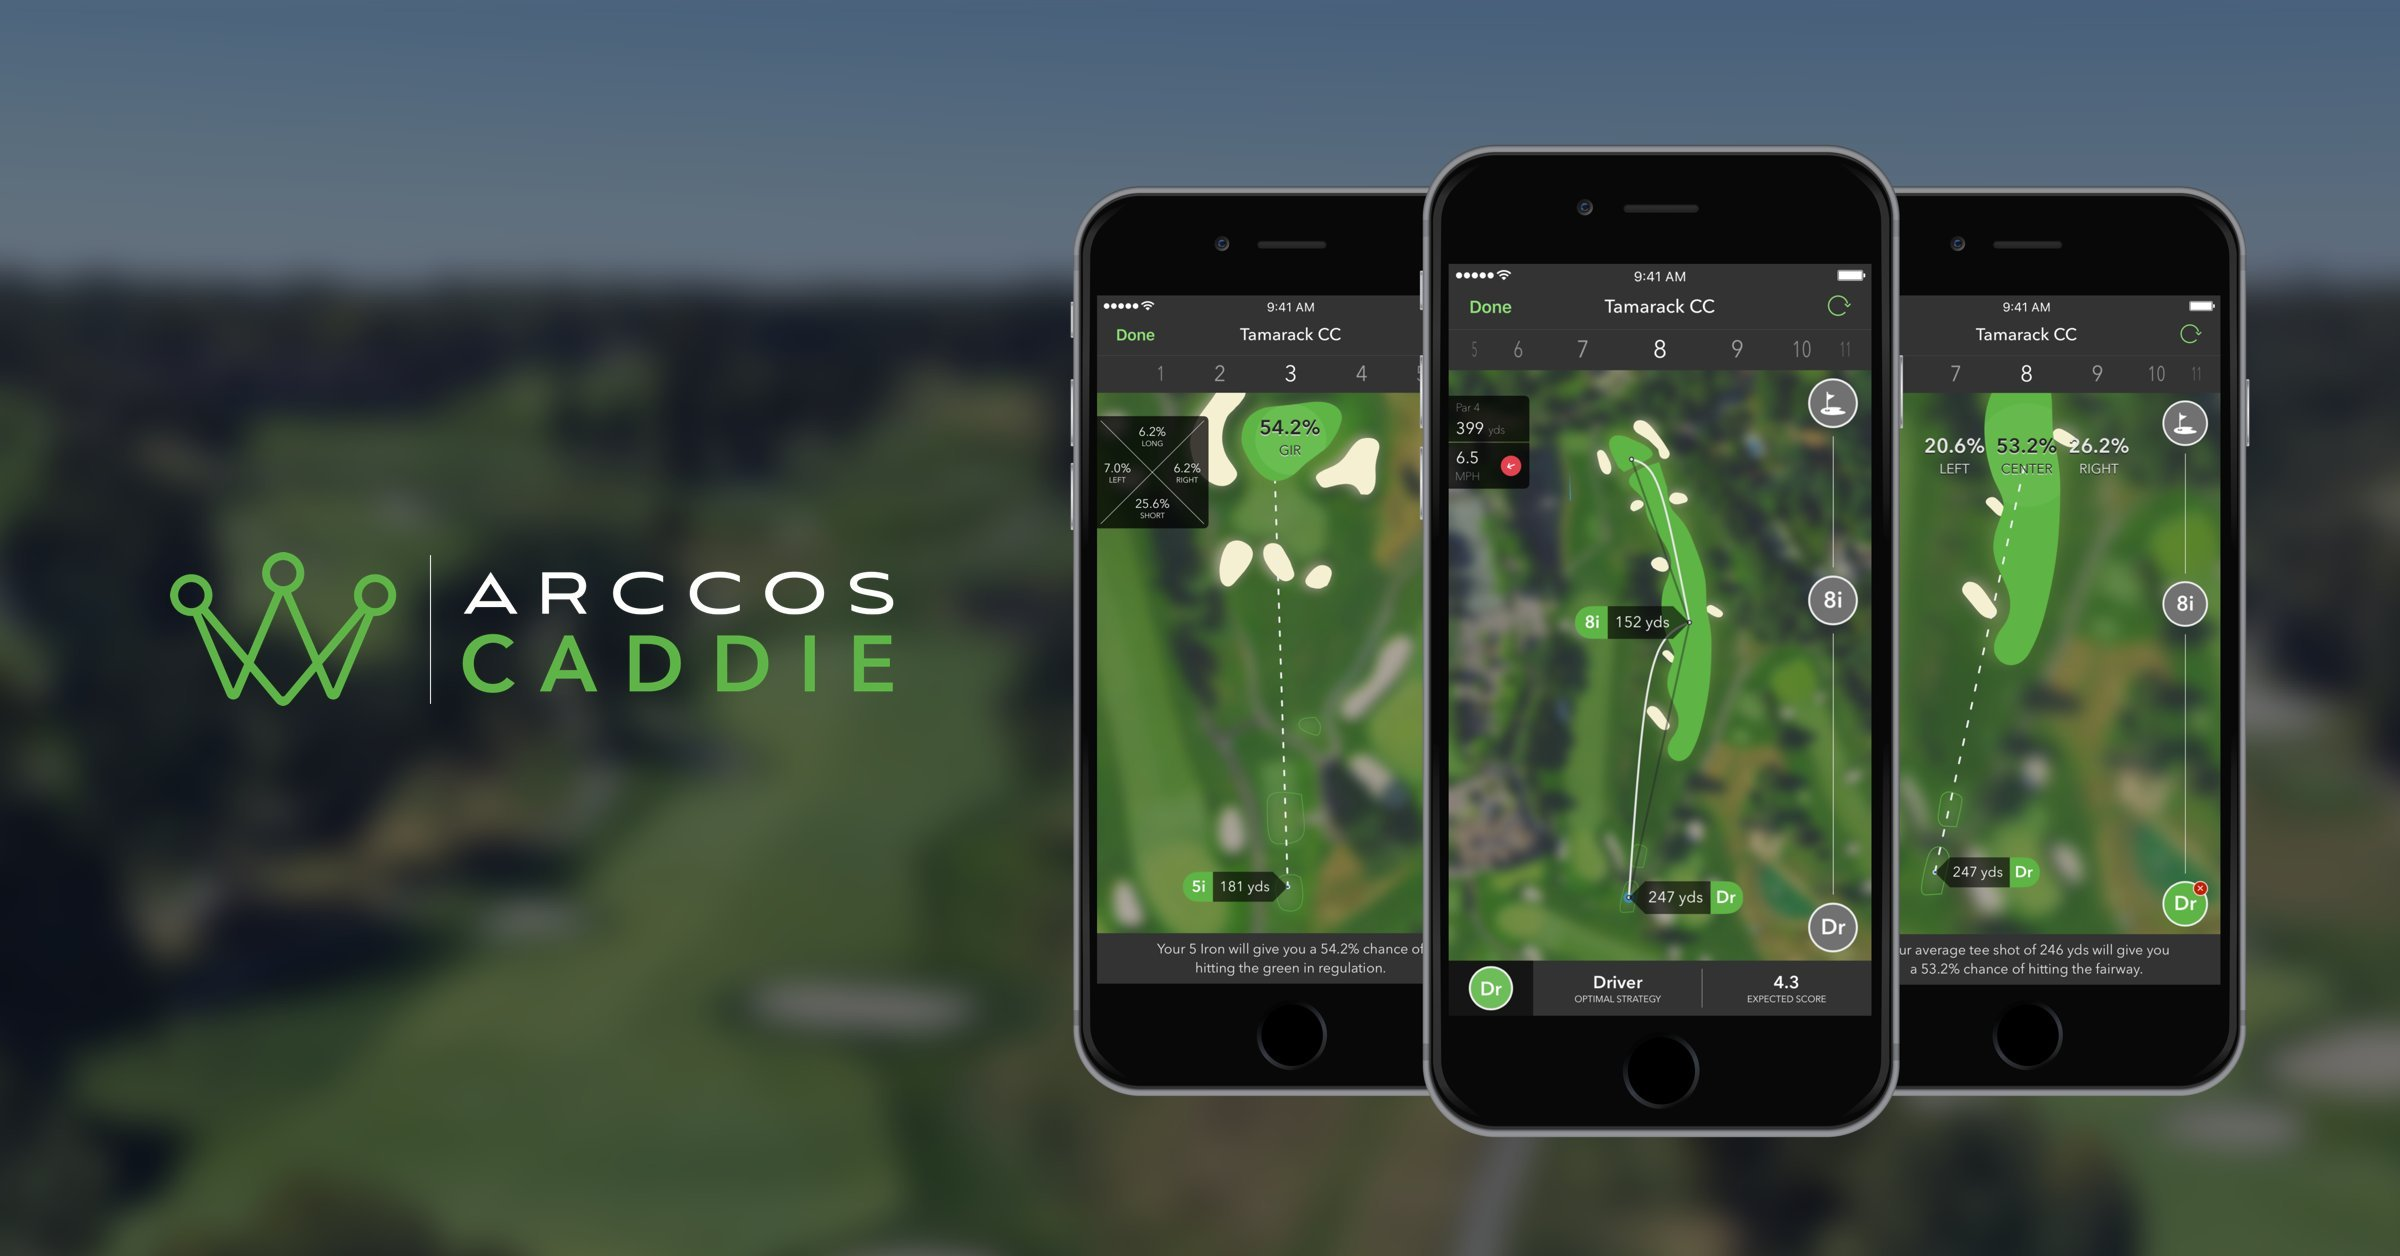 Arccos 360 with PlayBetter Portable Smartphone Charger | Golf GPS Live Shot Tracking System (for iOS & Android) 14-Sensor Set | App Offers Arccos Caddie | Bundle by Arccos Golf (Image #6)